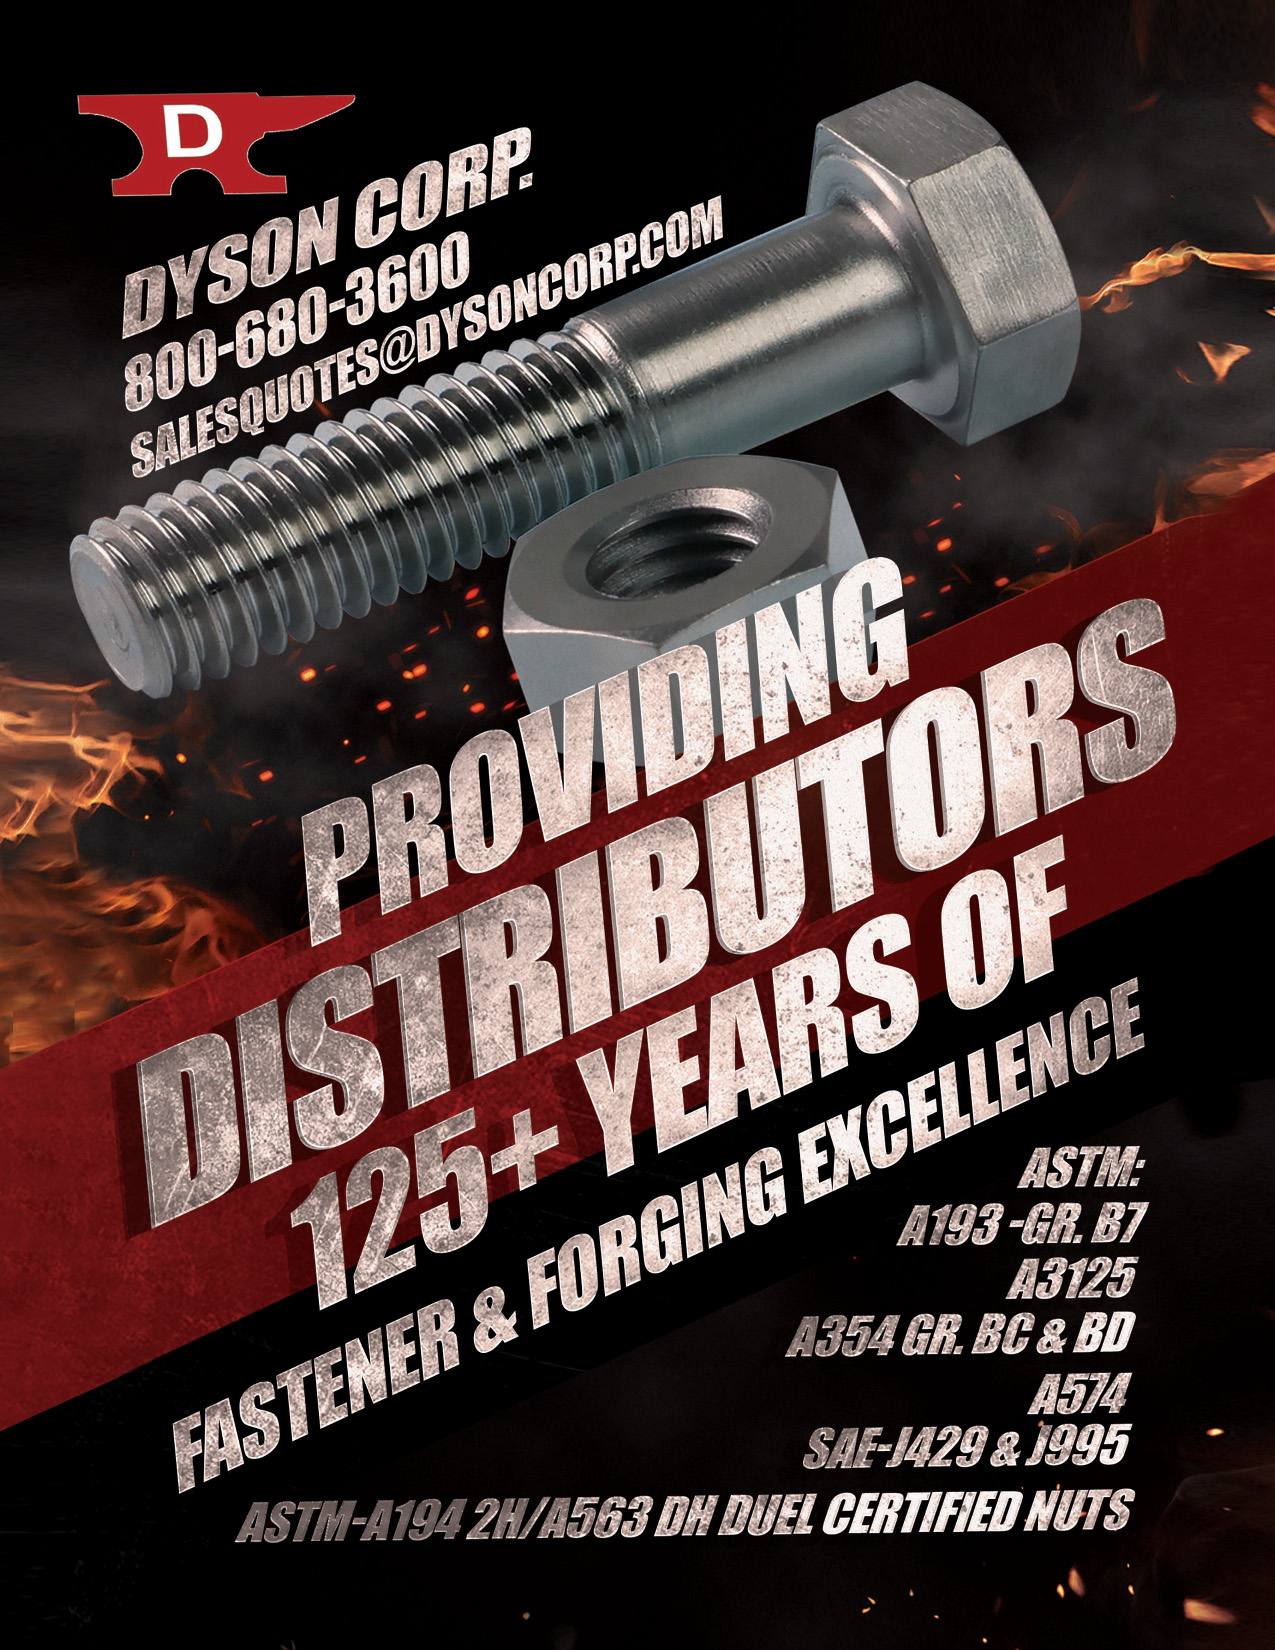 GC2337-Dyson_LinkAd-Spring18-PROOF-002.png